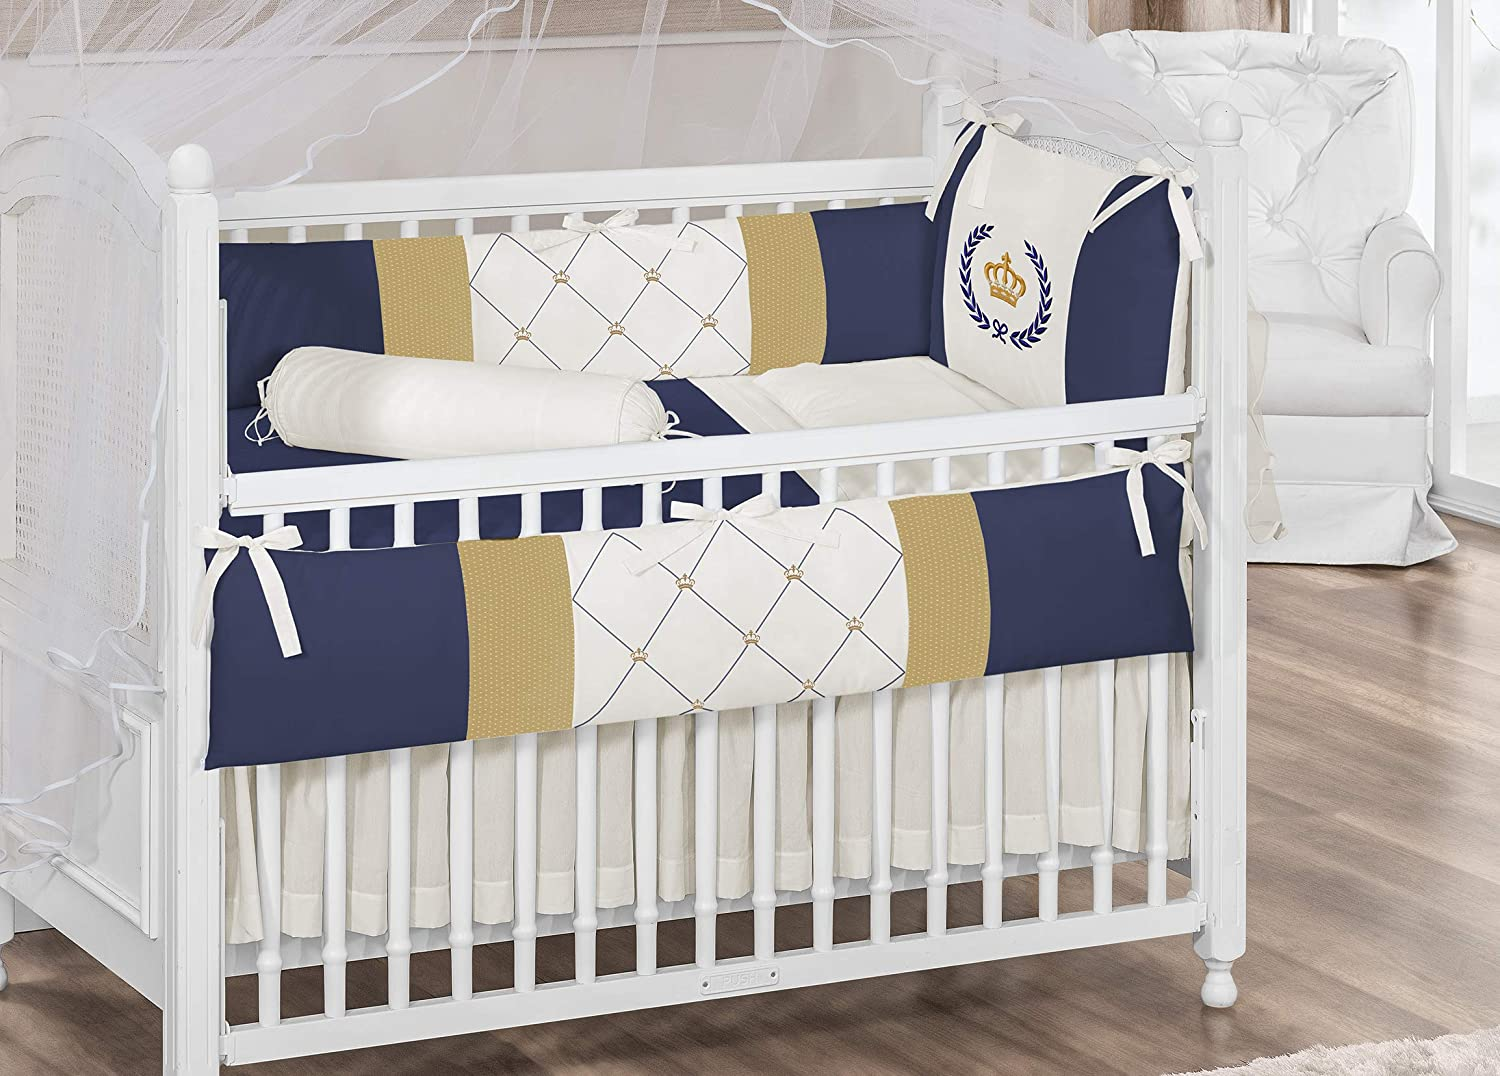 Royal Crown Theme Navy Blue Ivory Baby Boy 7 Pcs Embroidered Nursery Crib Bedding Set Bumpers + Sheet Set + Changing Pad